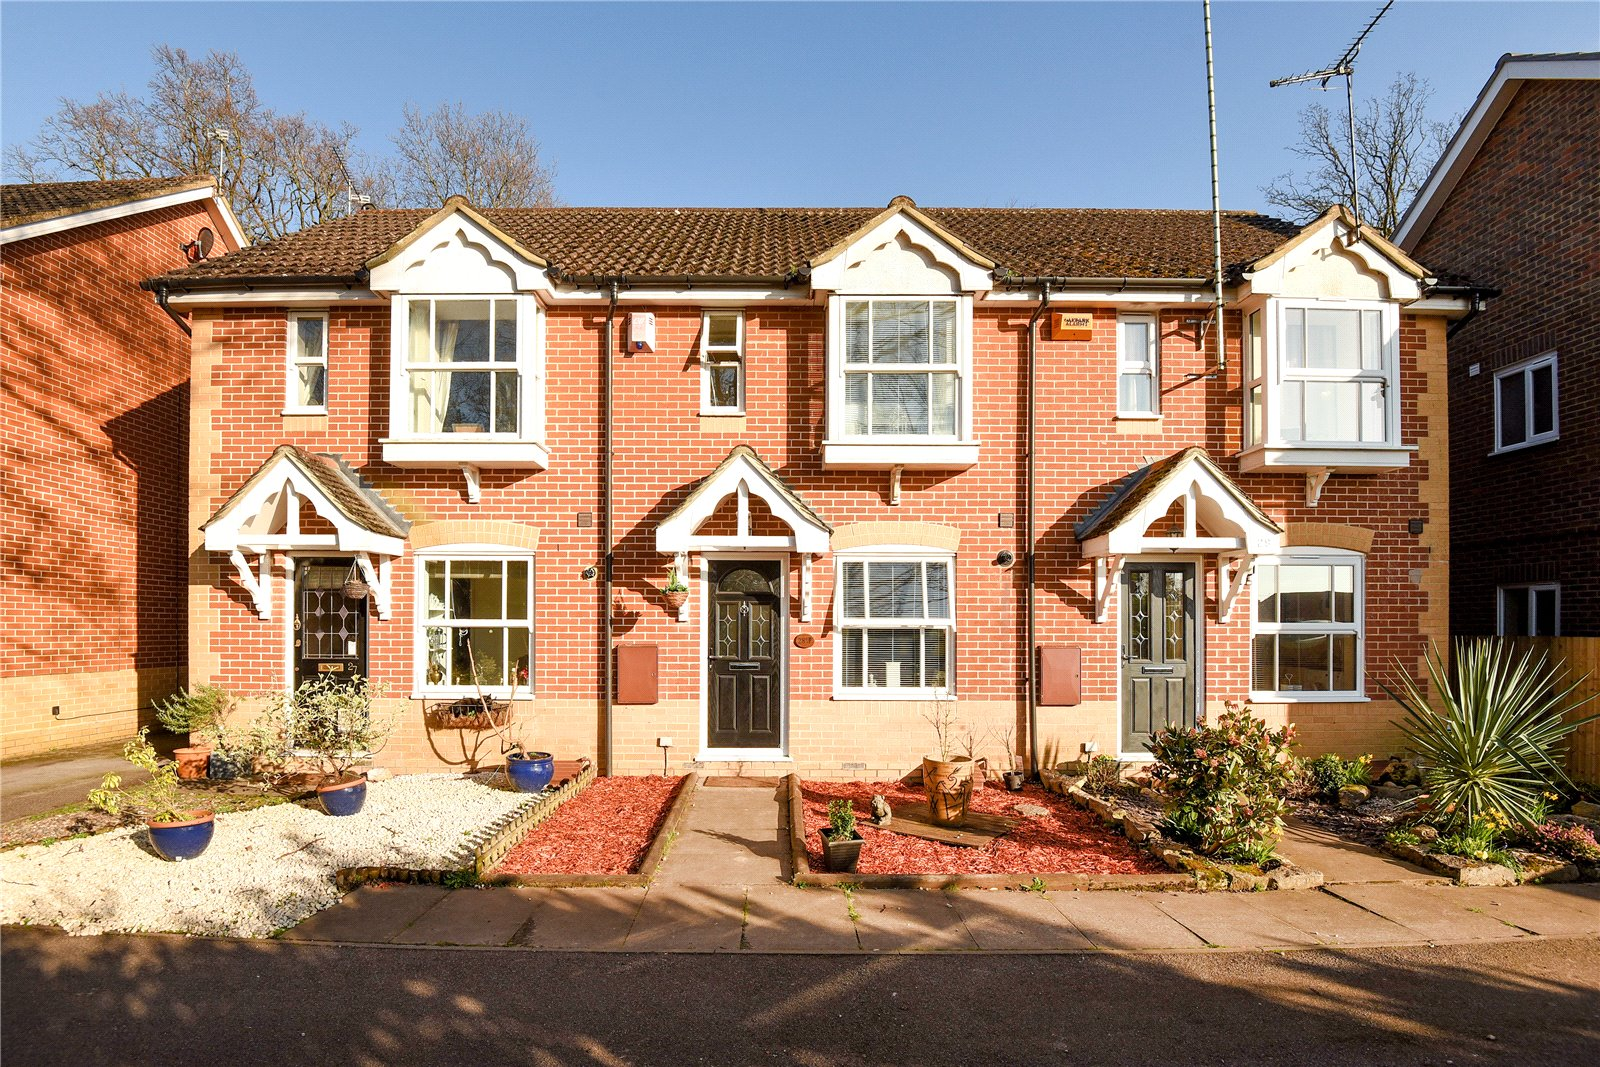 2 Bedrooms Terraced House for sale in The Breech, College Town, Sandhurst, Berkshire, GU47